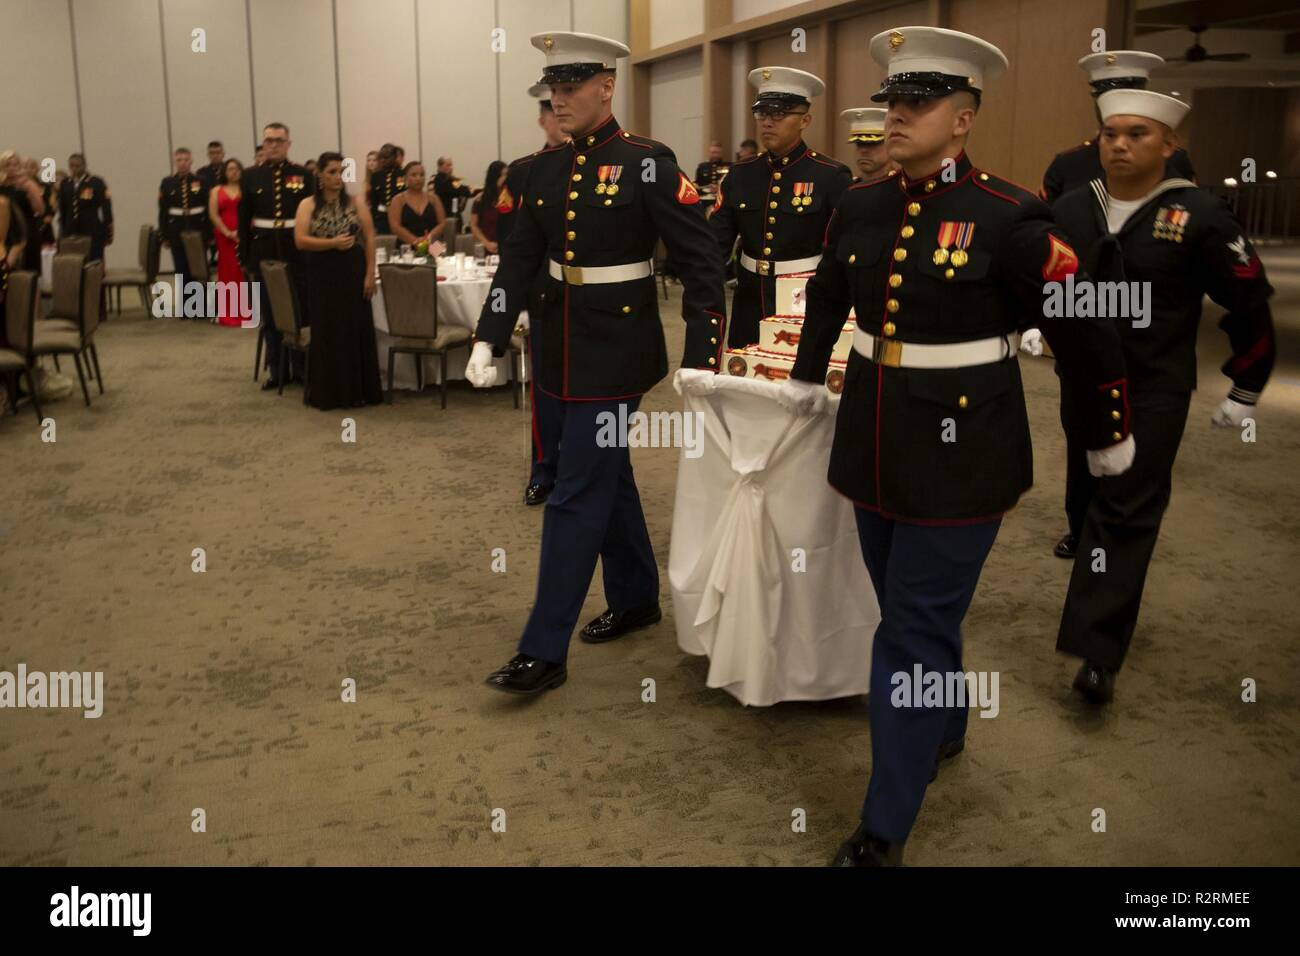 US Marines And Sailors With Marine Aircraft Group 24 March In The Birthday Cake During Units Ball Celebration Honolulu Hawaii Nov 3 2018